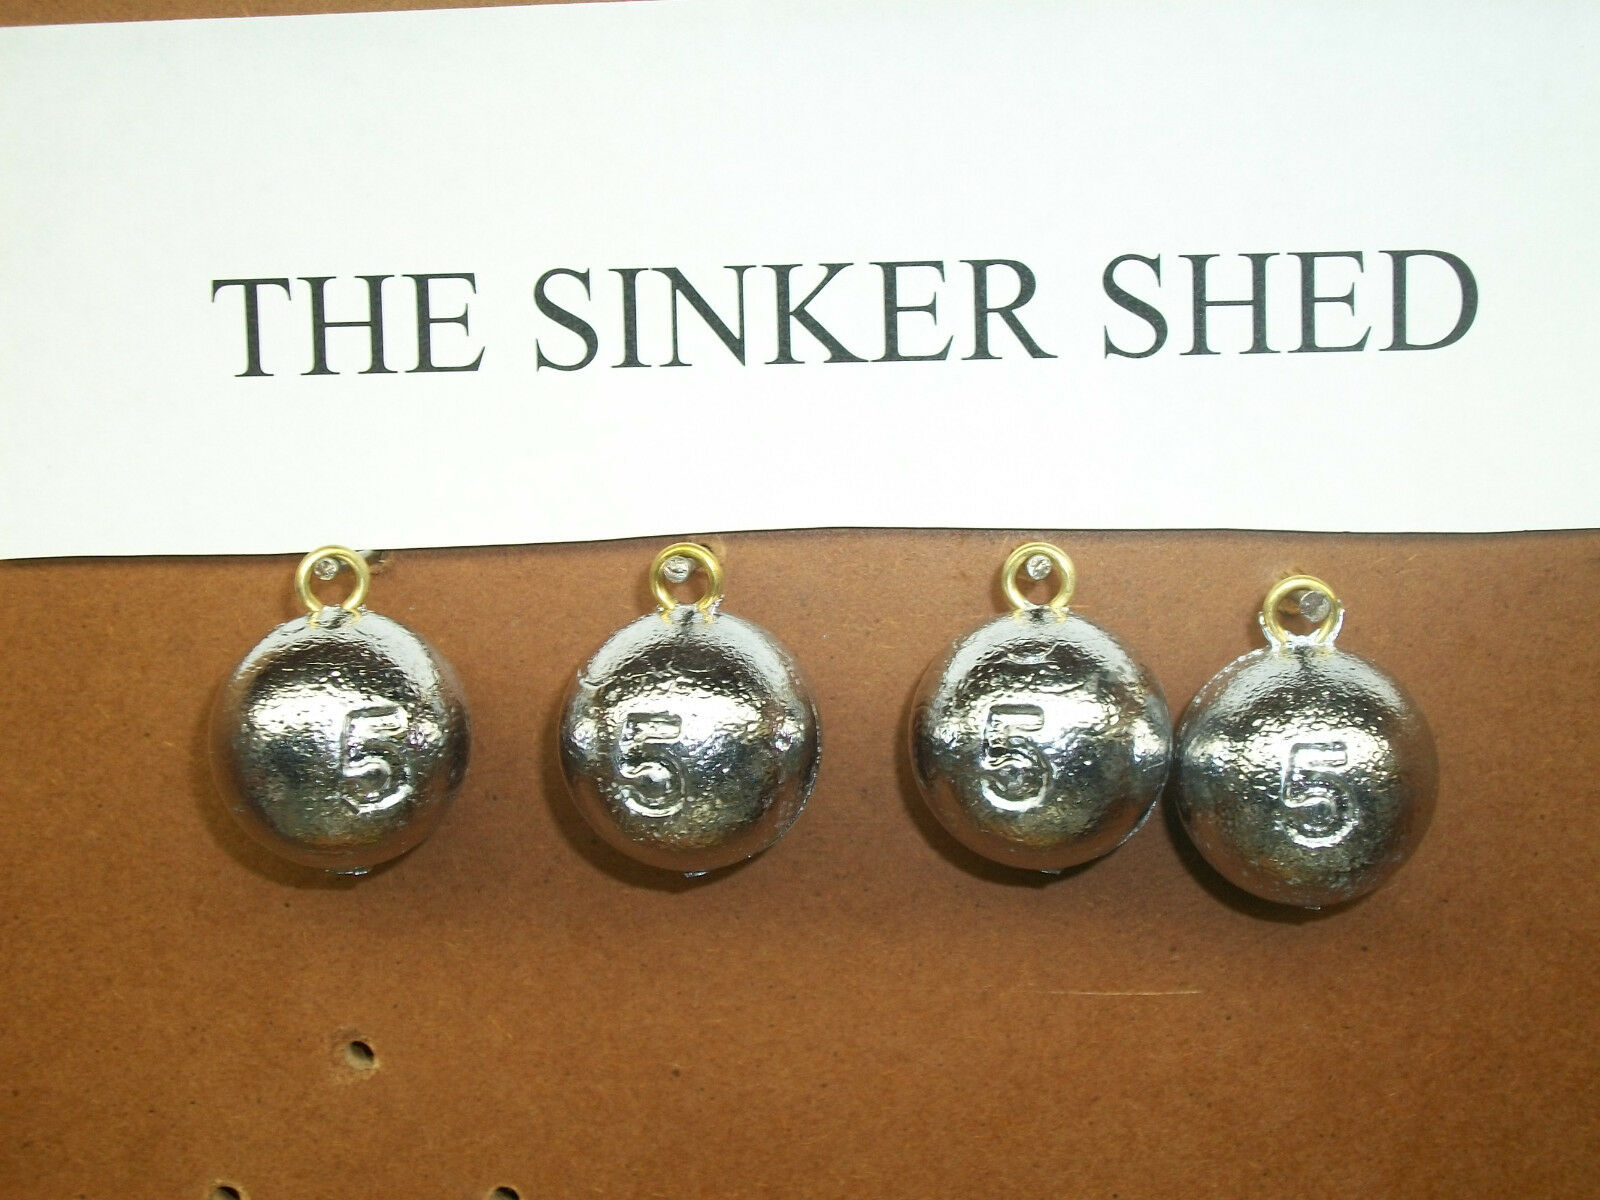 5  oz cannon ball sinkers - choose quantity 12 25 50 100 200 - FREE SHIPPING  the best online store offer